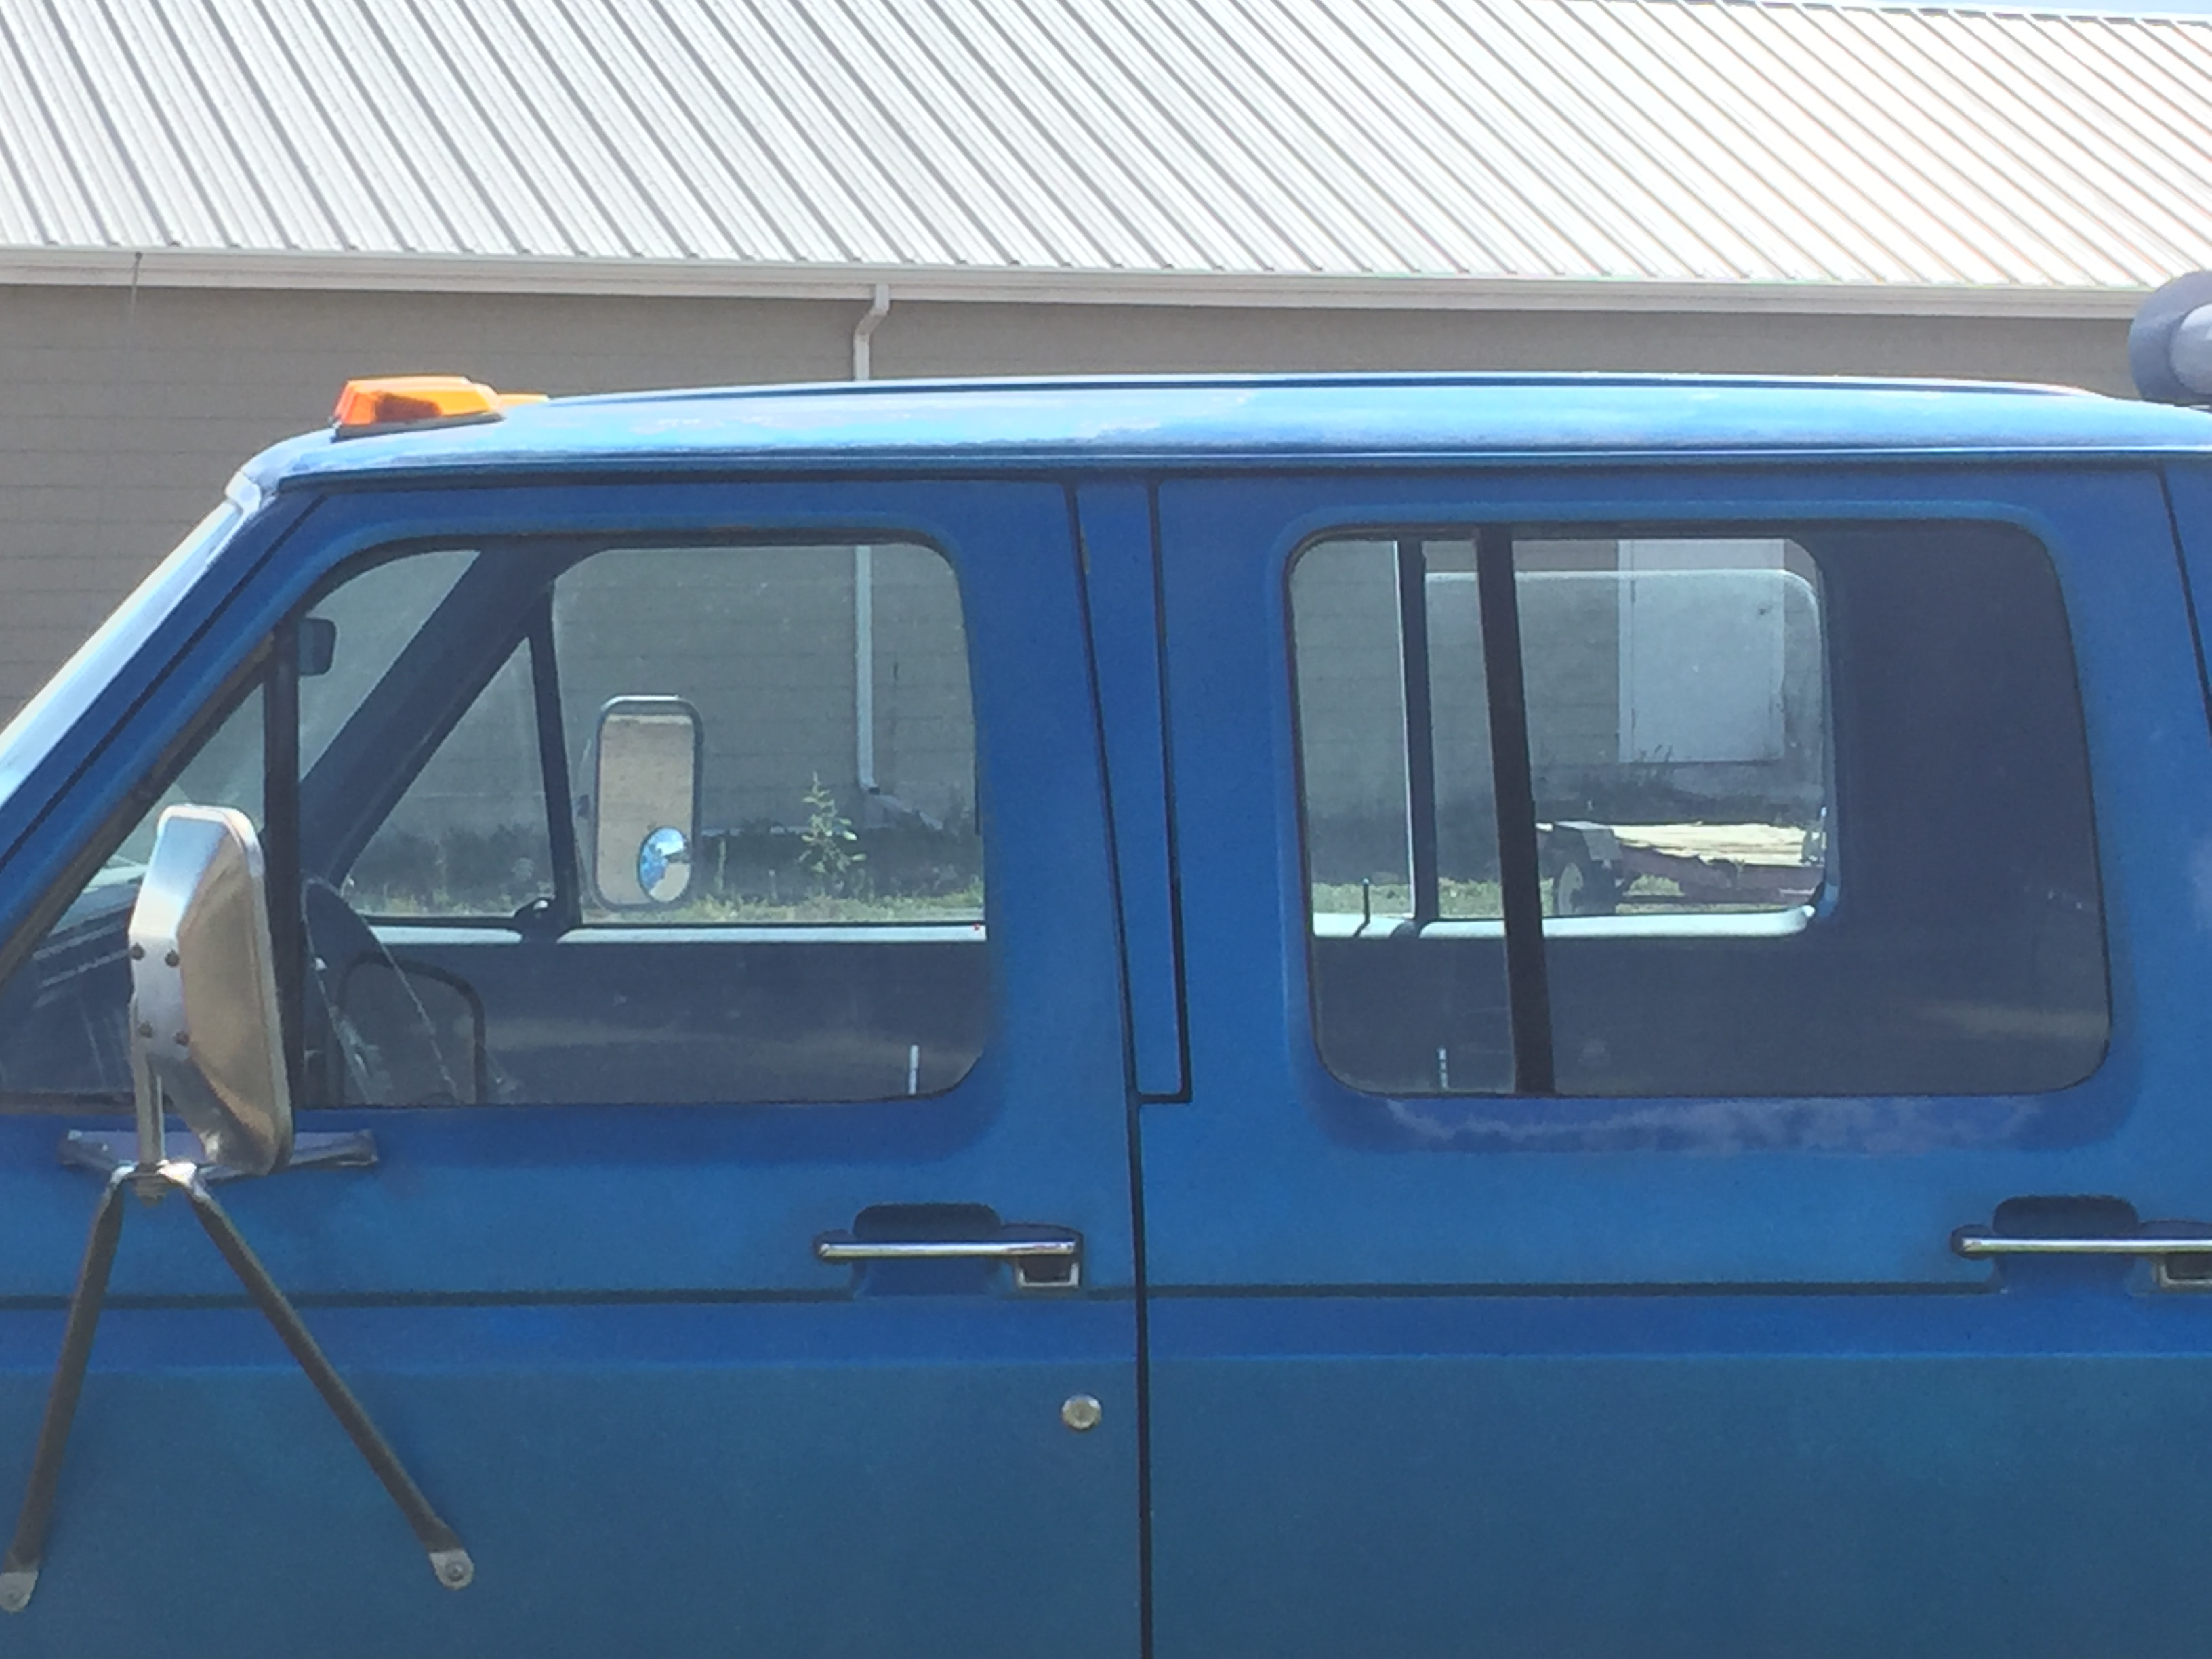 After removal of old failed window tint